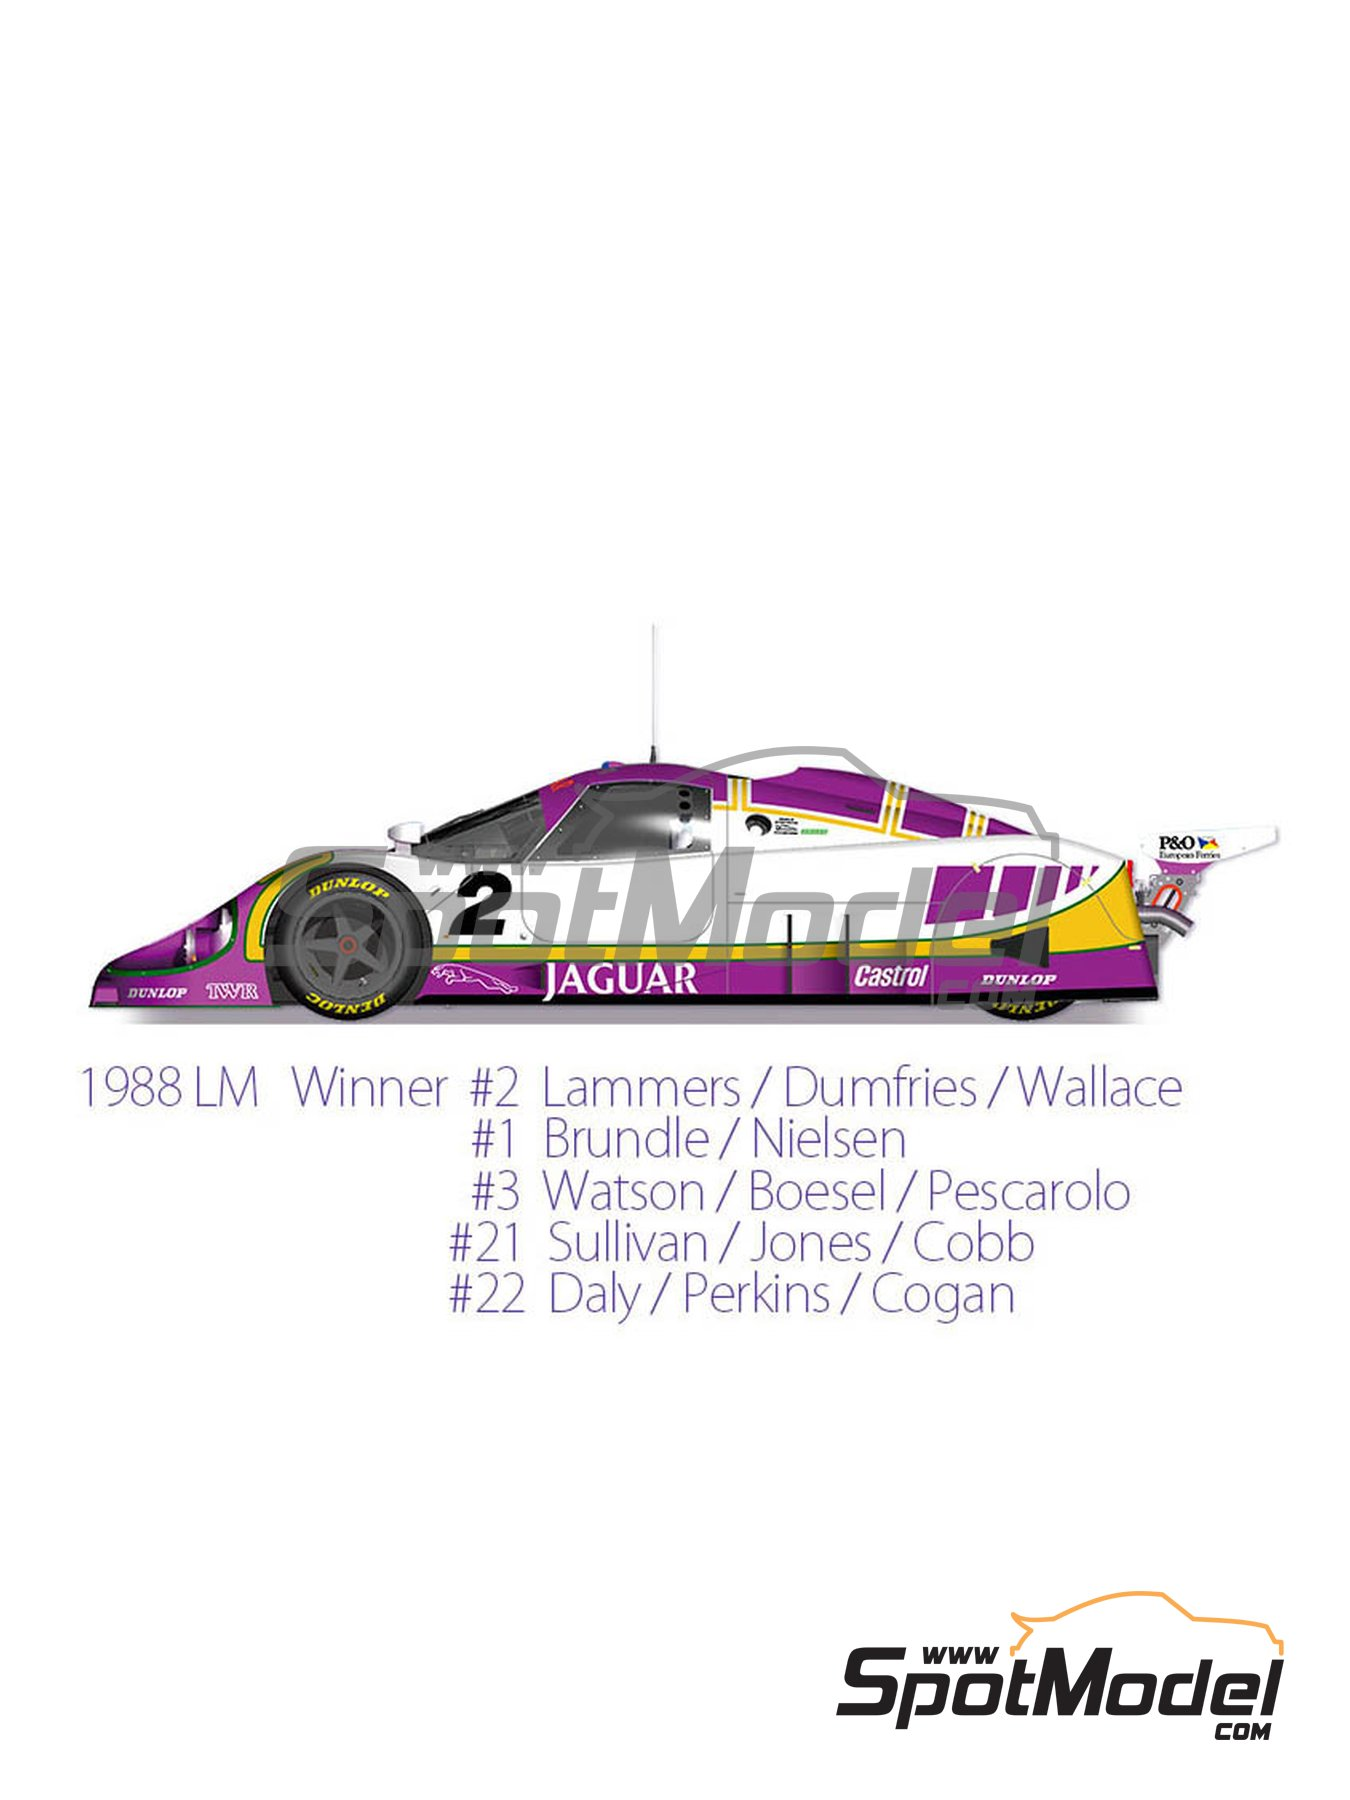 Jaguar XJR-9 LM Silk Cut - 24 Hours Le Mans 1988 | Model car kit in 1/43 scale manufactured by Model Factory Hiro (ref. MFH-K590) image